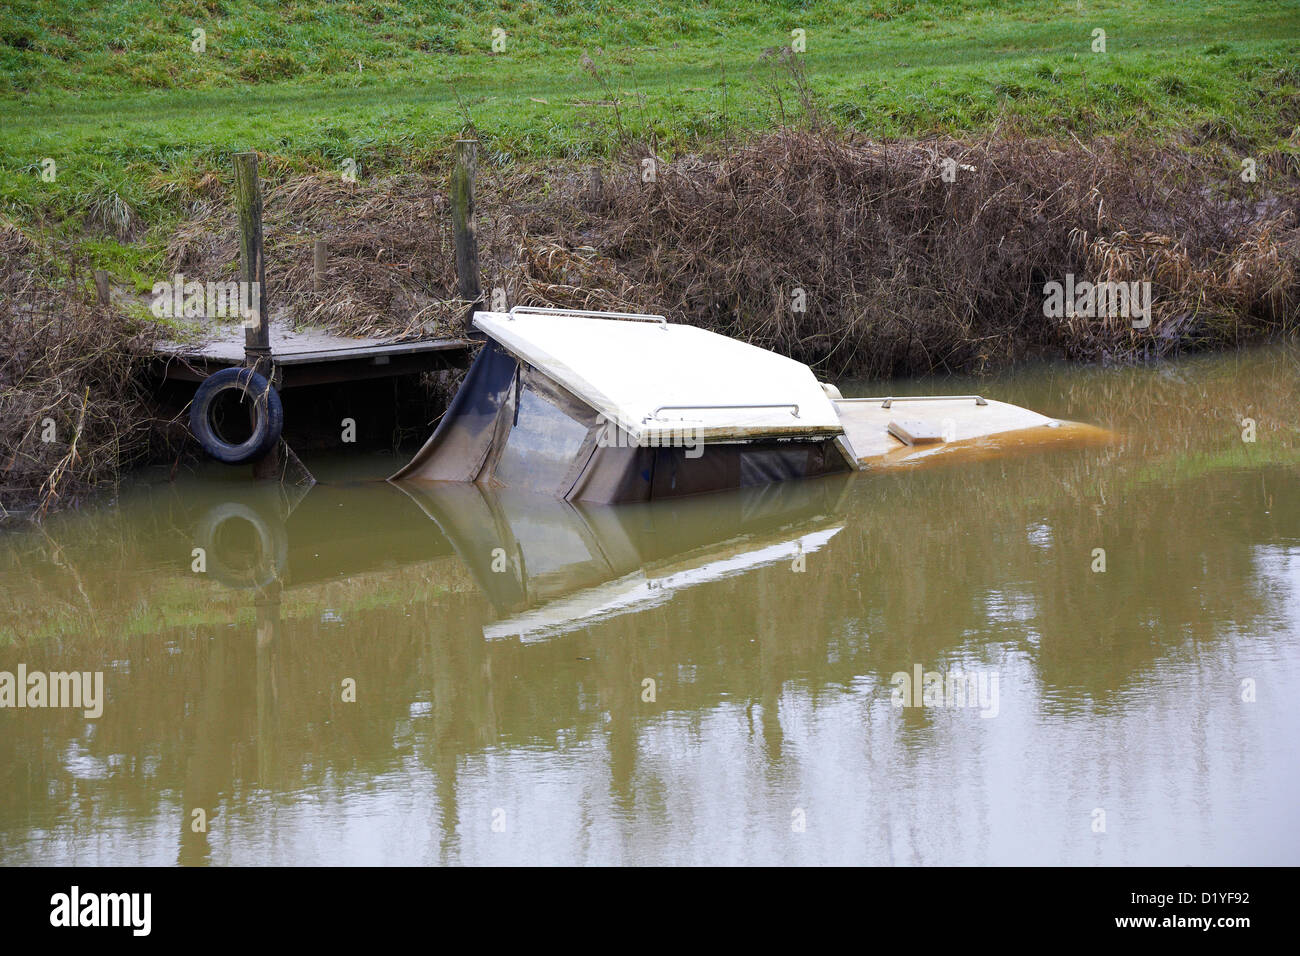 Boat sunk in flooded river - Stock Image